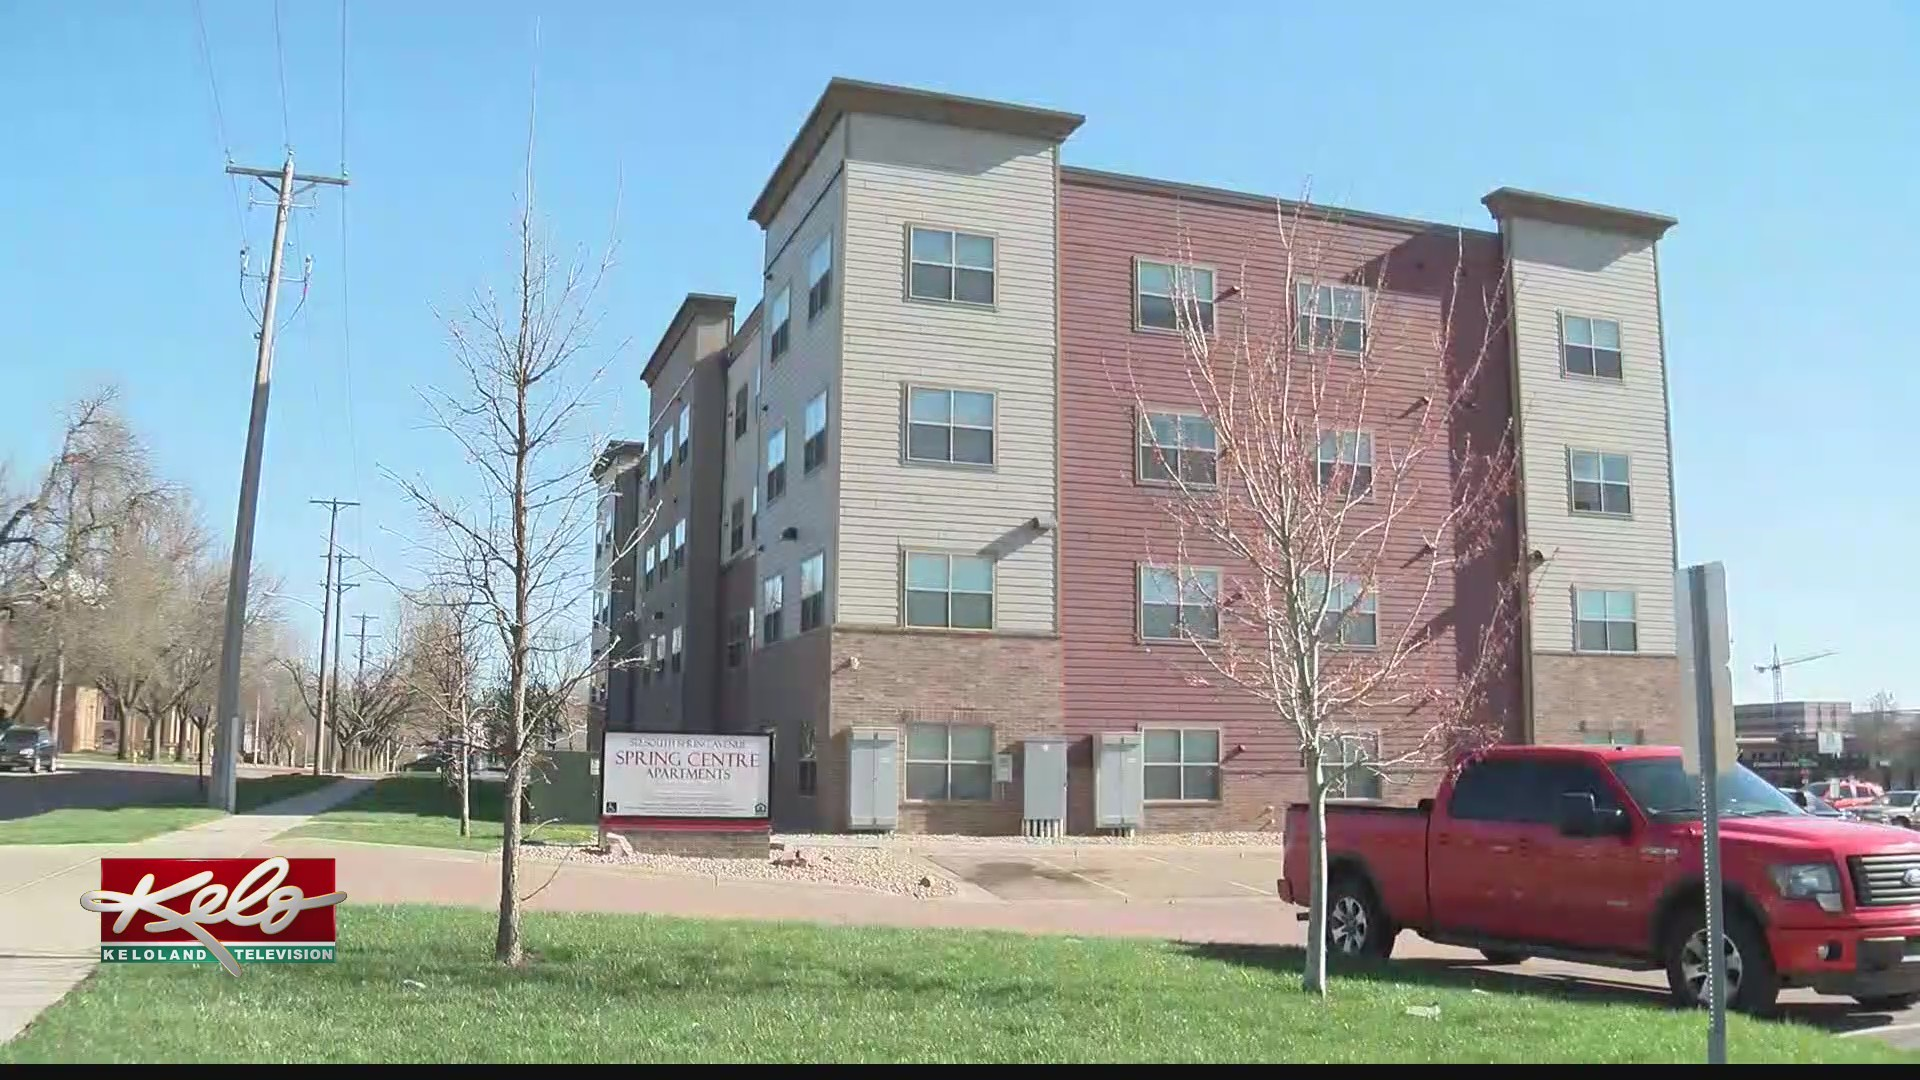 Sioux Falls Housing Manager encouraging people to sign up for Housing Summit